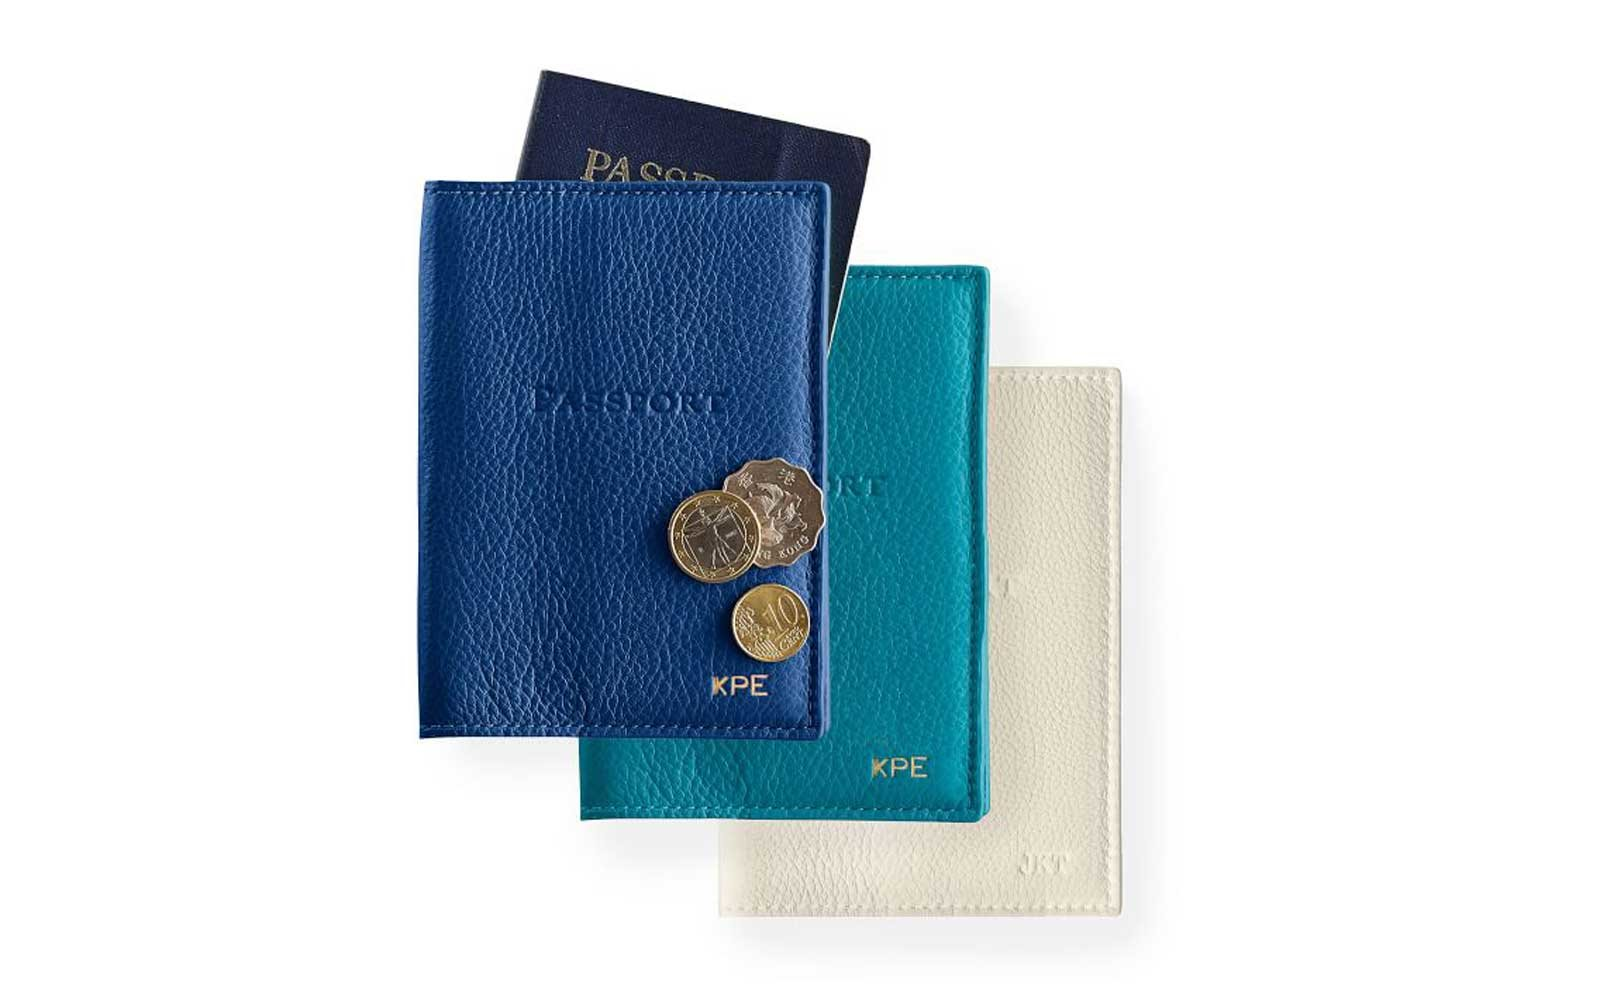 Monogrammed Leather Passport Covers